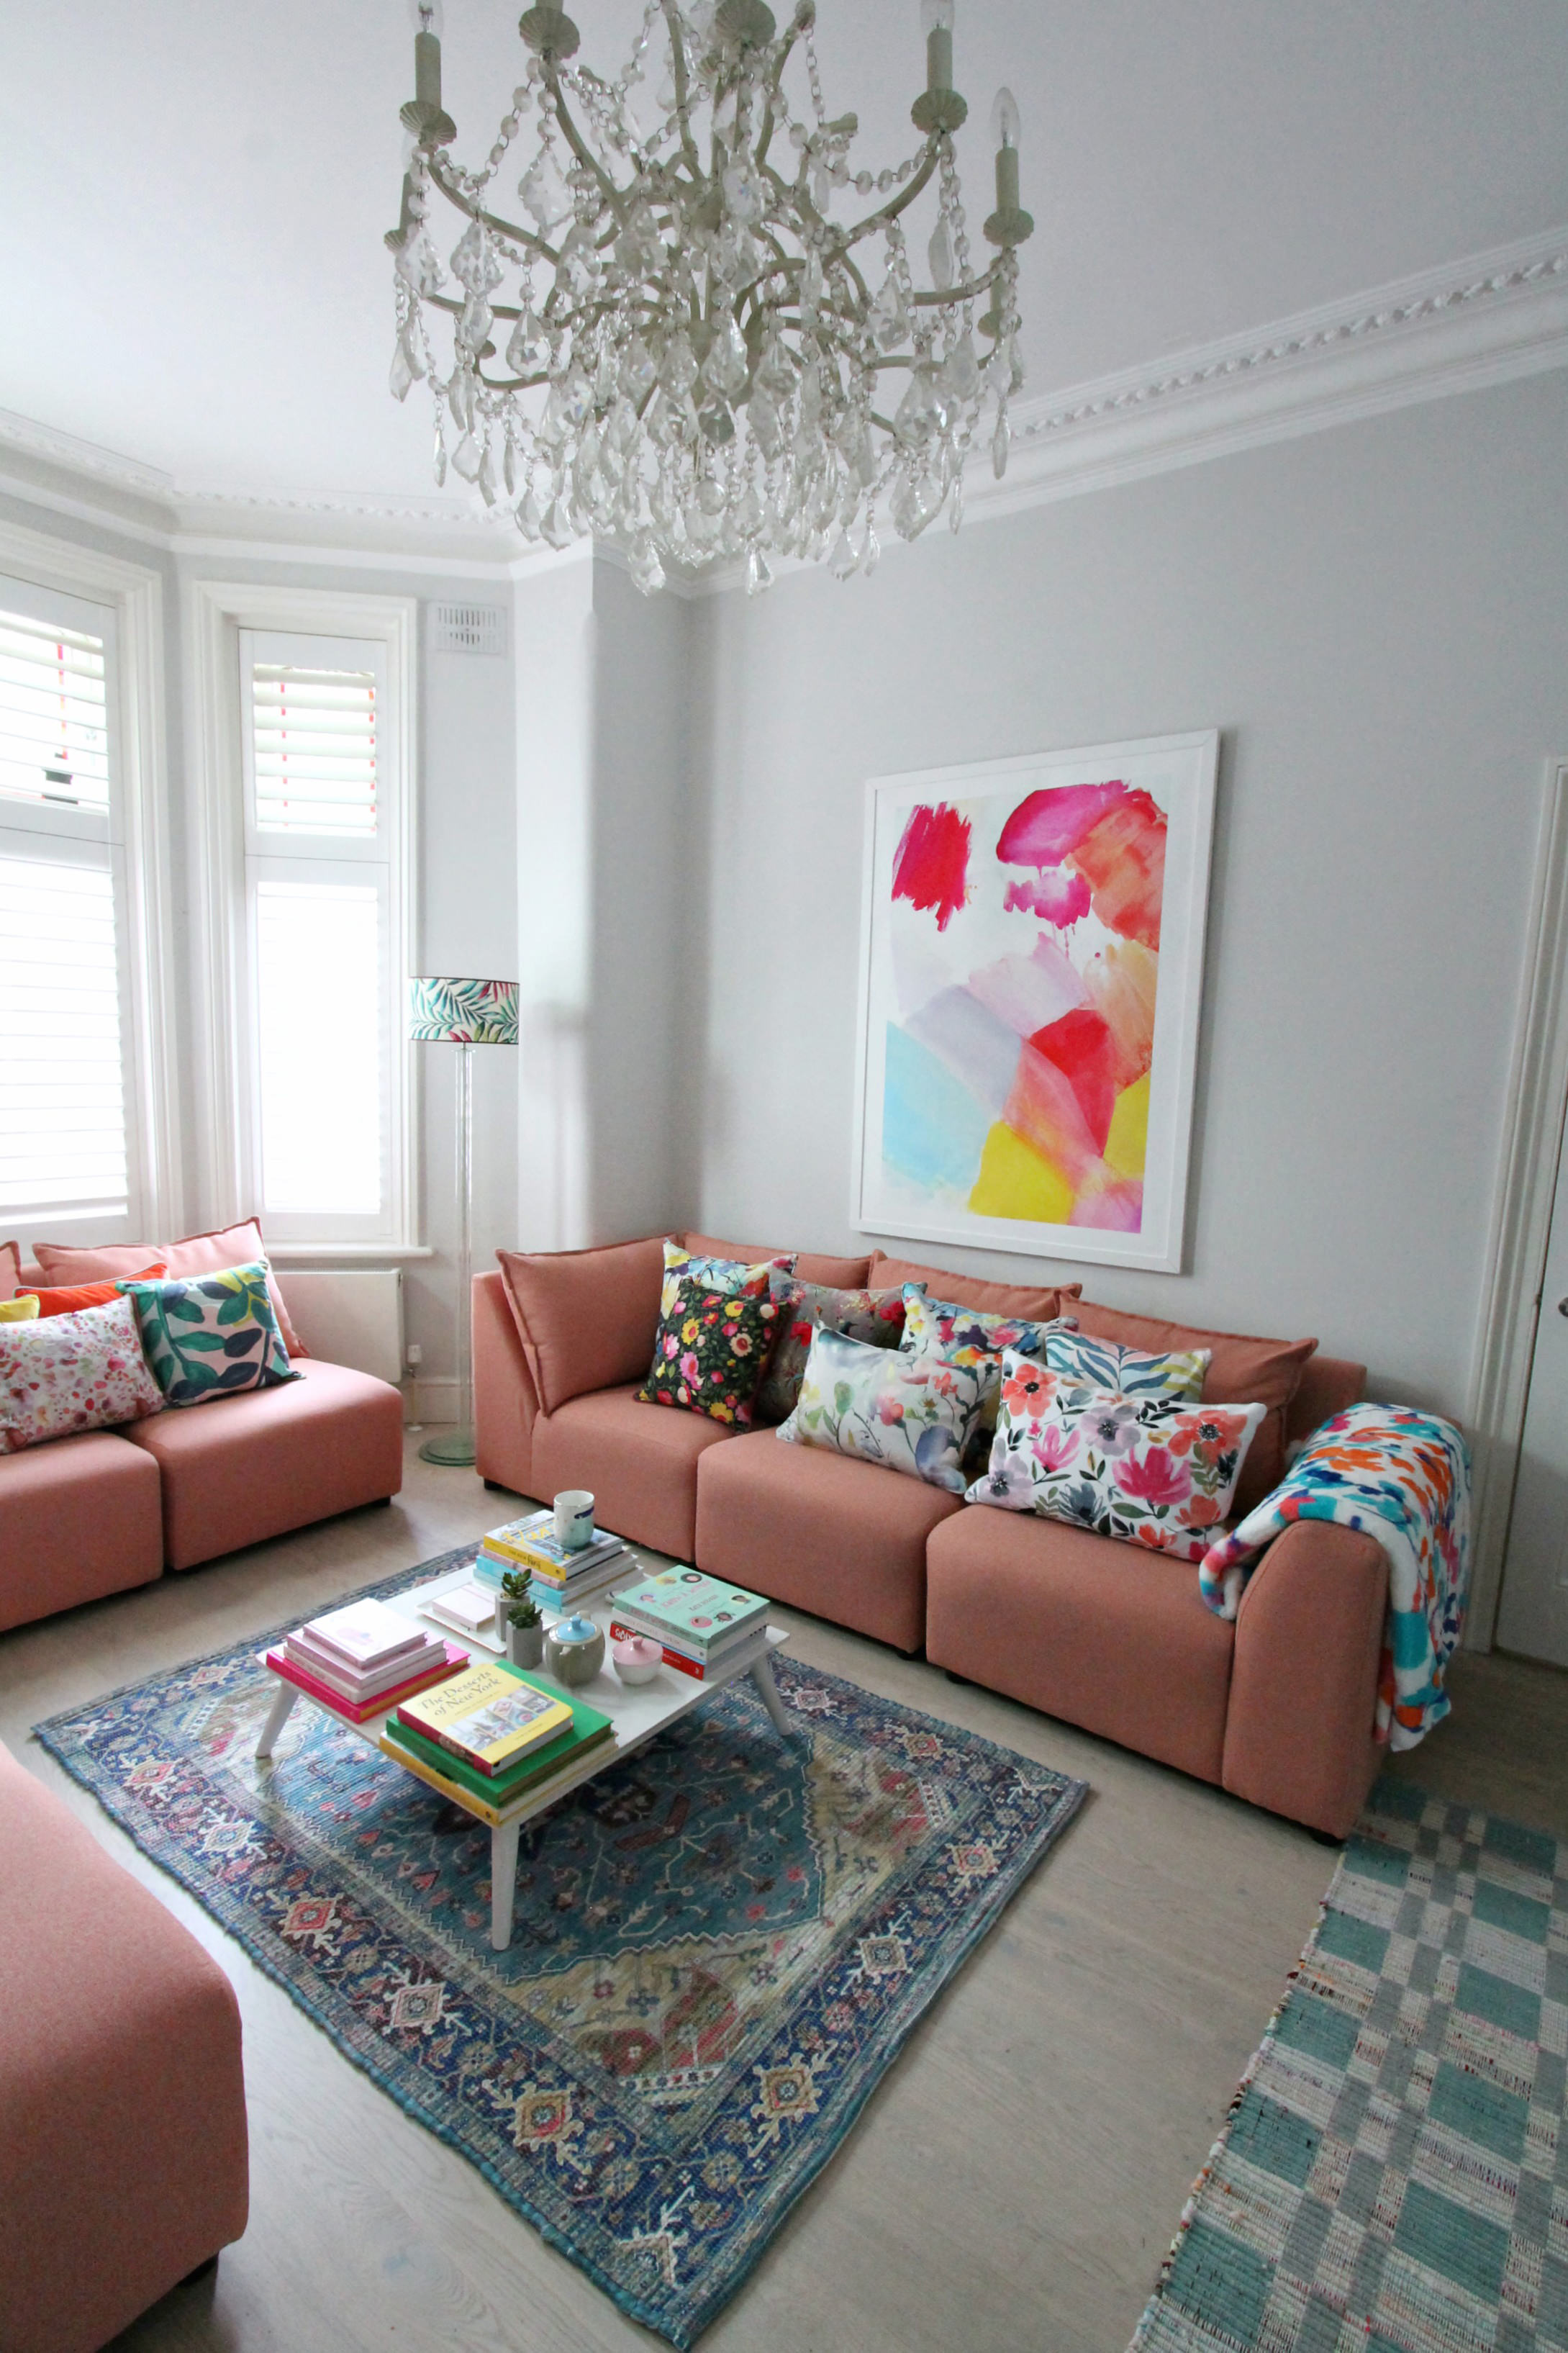 Littlebigbell My Top 10 Homesense Finds For A Floral Revamp Of My Living Room